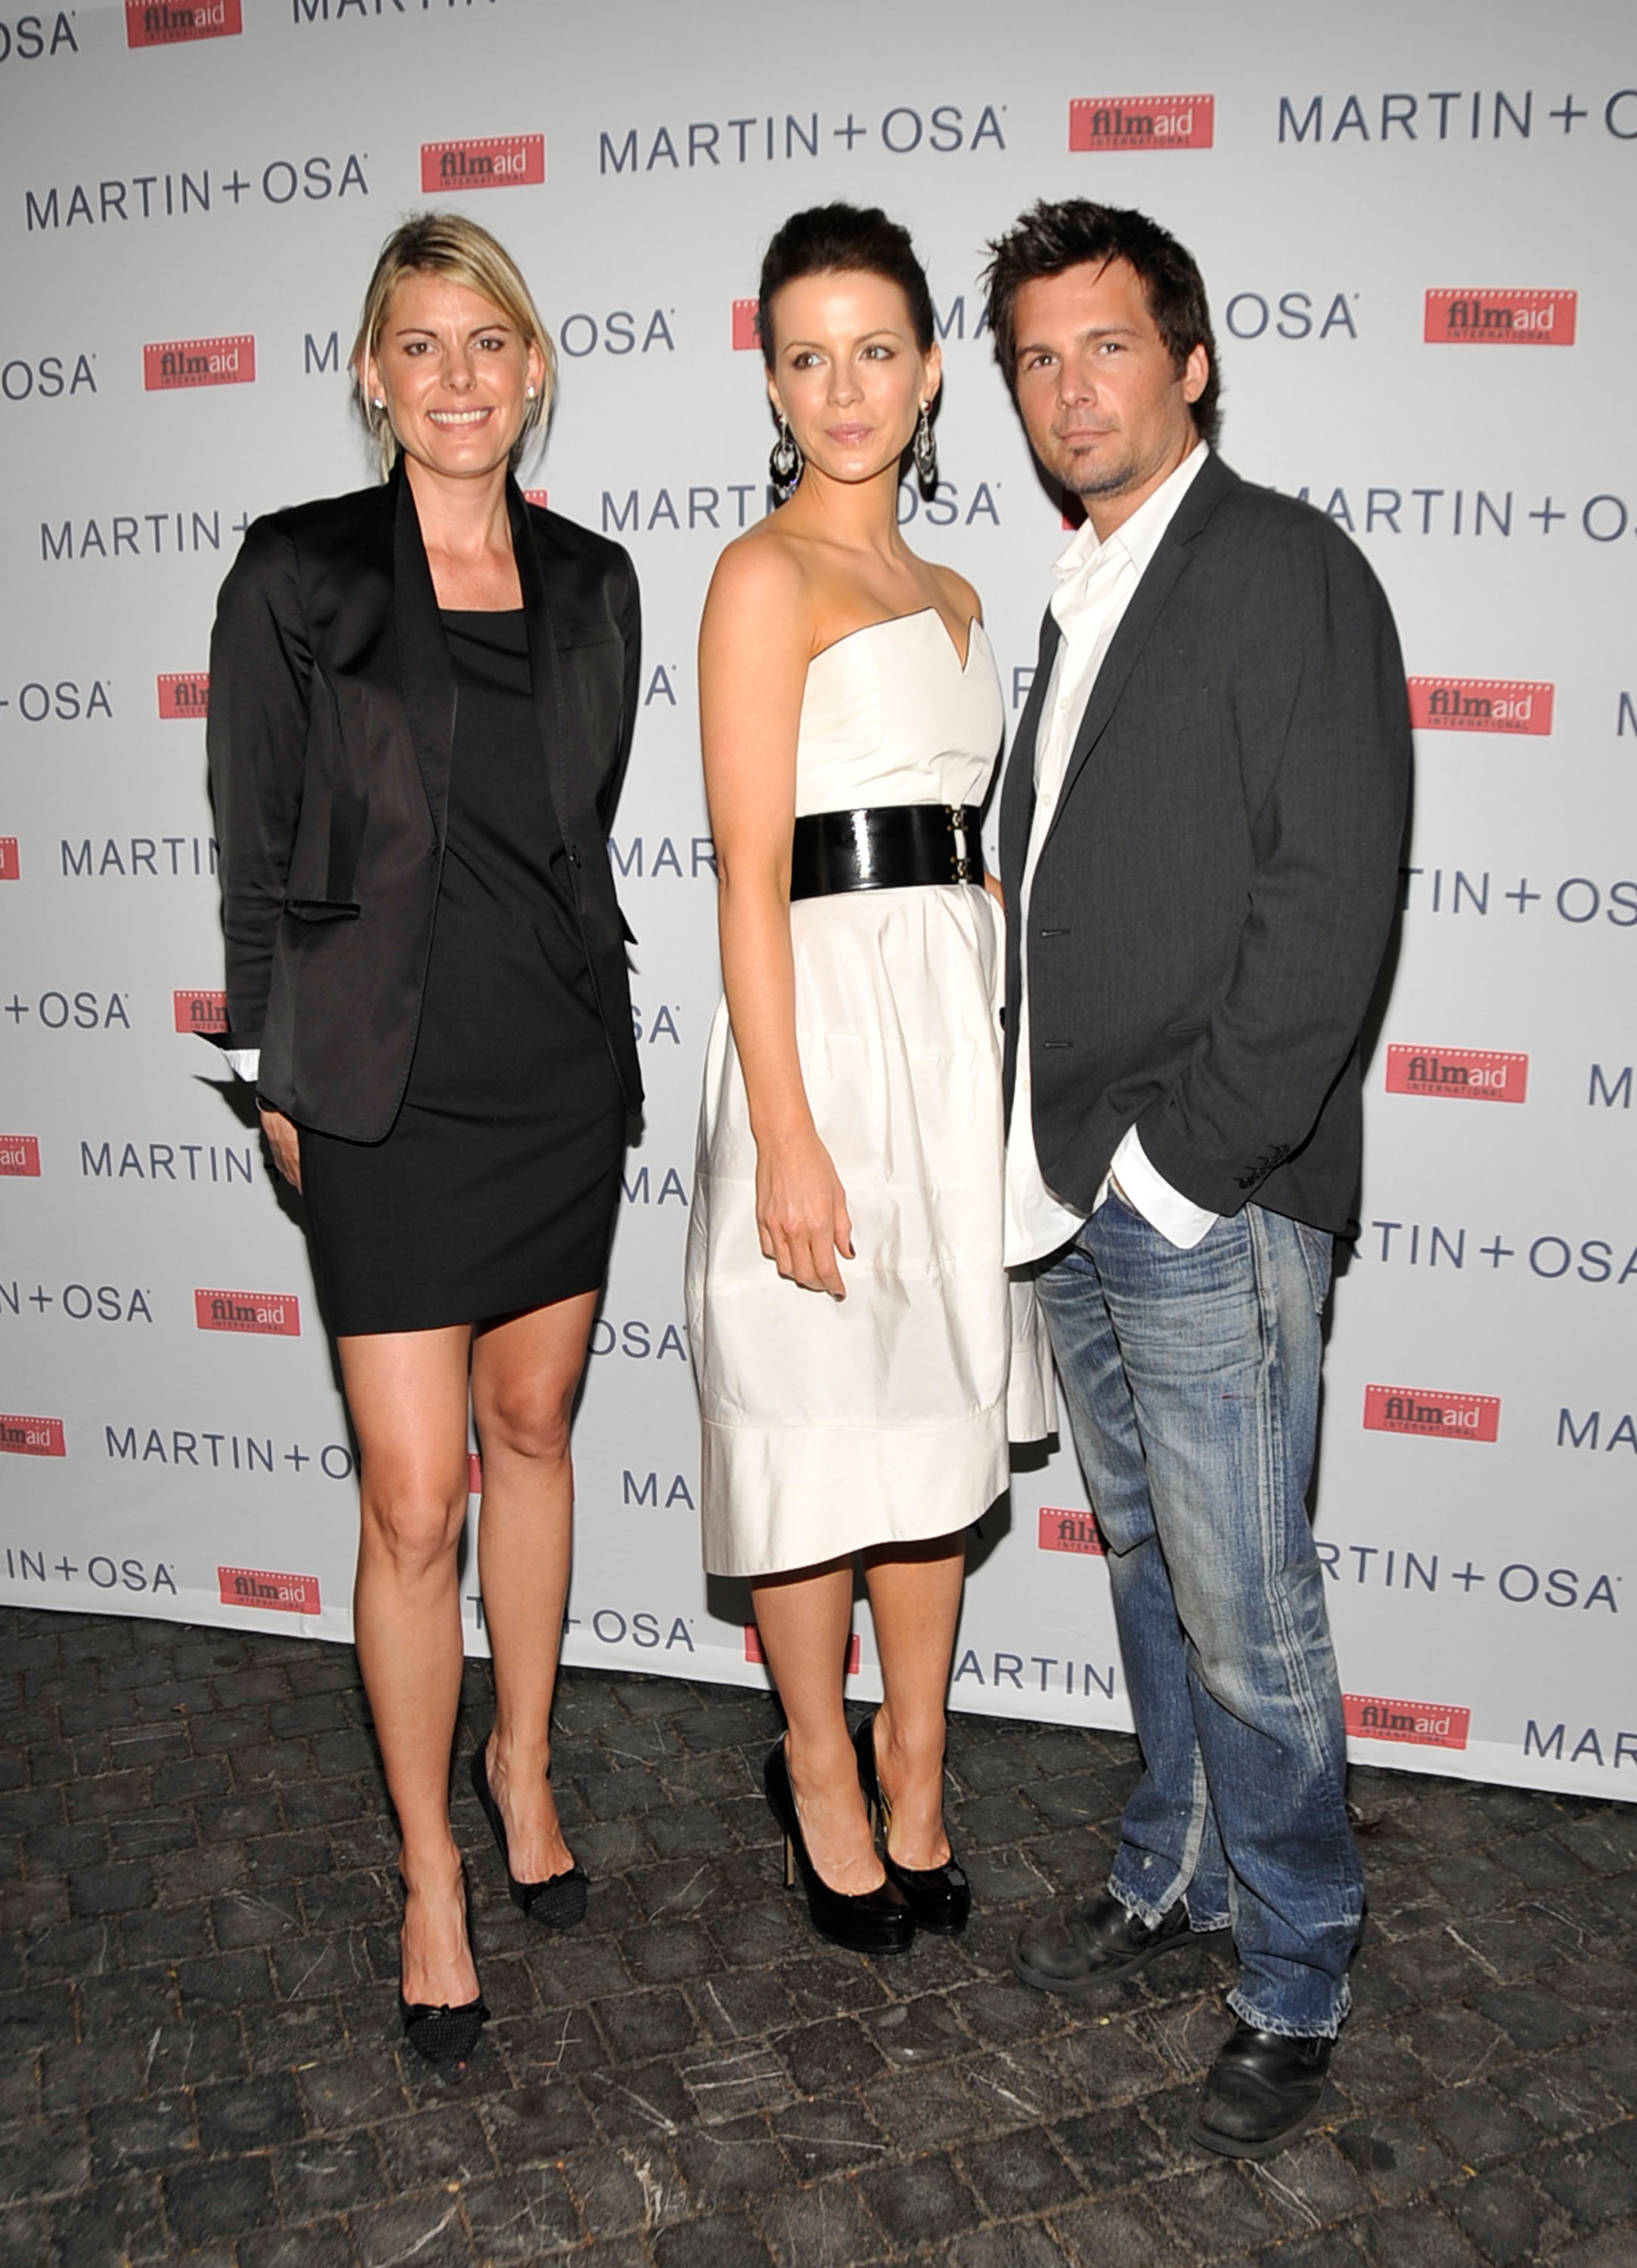 08728_Celebutopia-Kate_Beckinsale-Martin_0_Osa4s_Screening_Of_All_About_Eve_in_Hollywood-12_122_1131lo.jpg